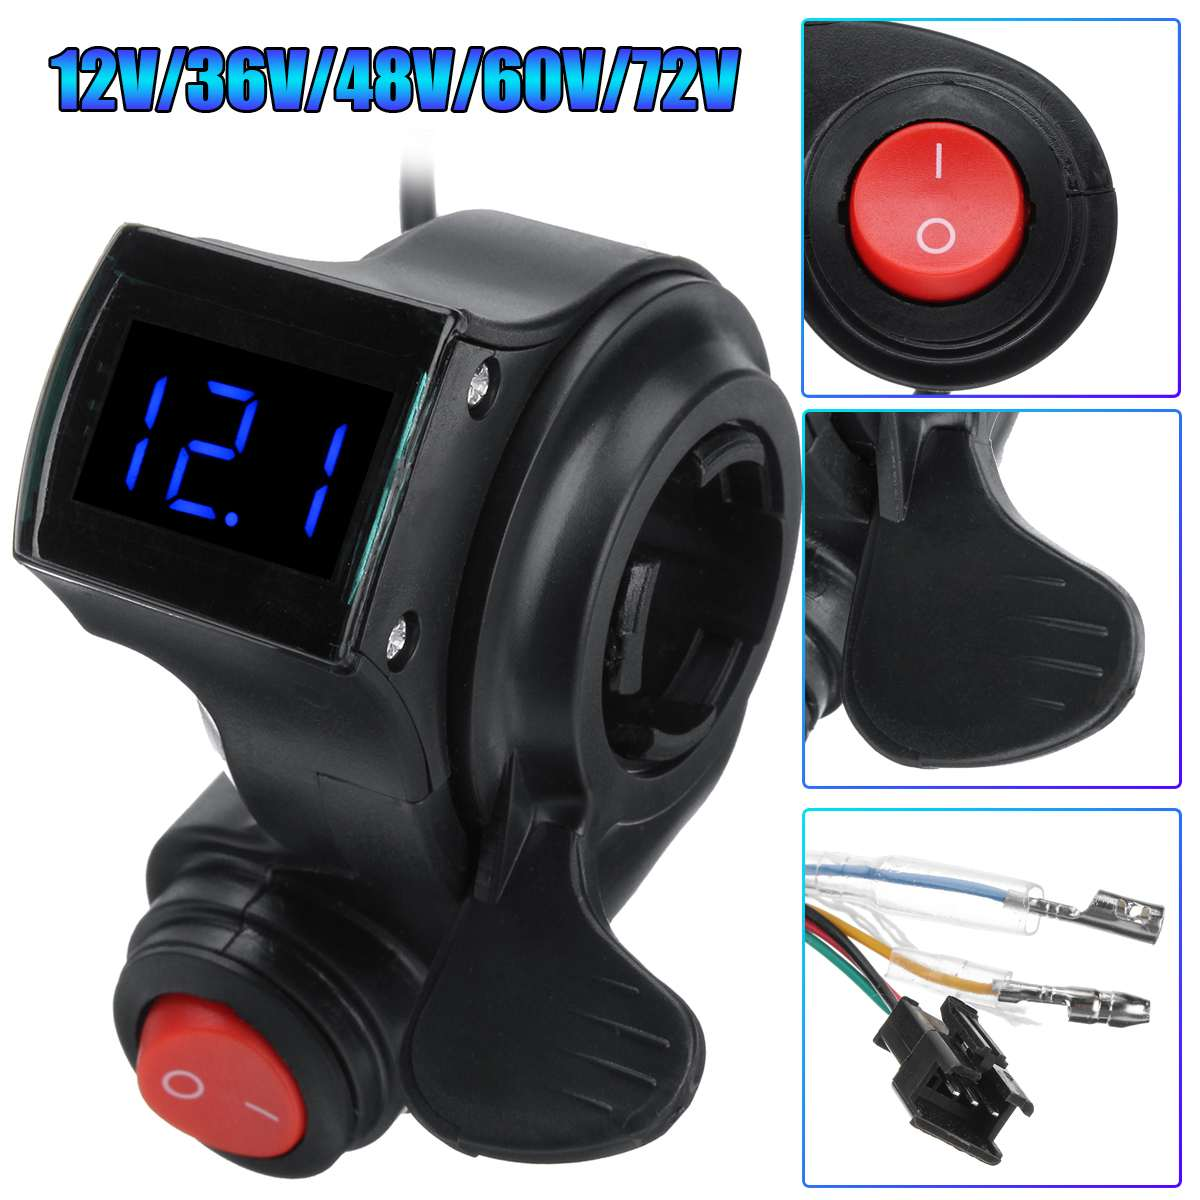 Selfless Finger Thumb Throttle Electric Scooter With Power Switch Led Display Switch Handlebar Grips For Electric Bike 36v/48/60/72v Beautiful And Charming Automobiles & Motorcycles Atv,rv,boat & Other Vehicle